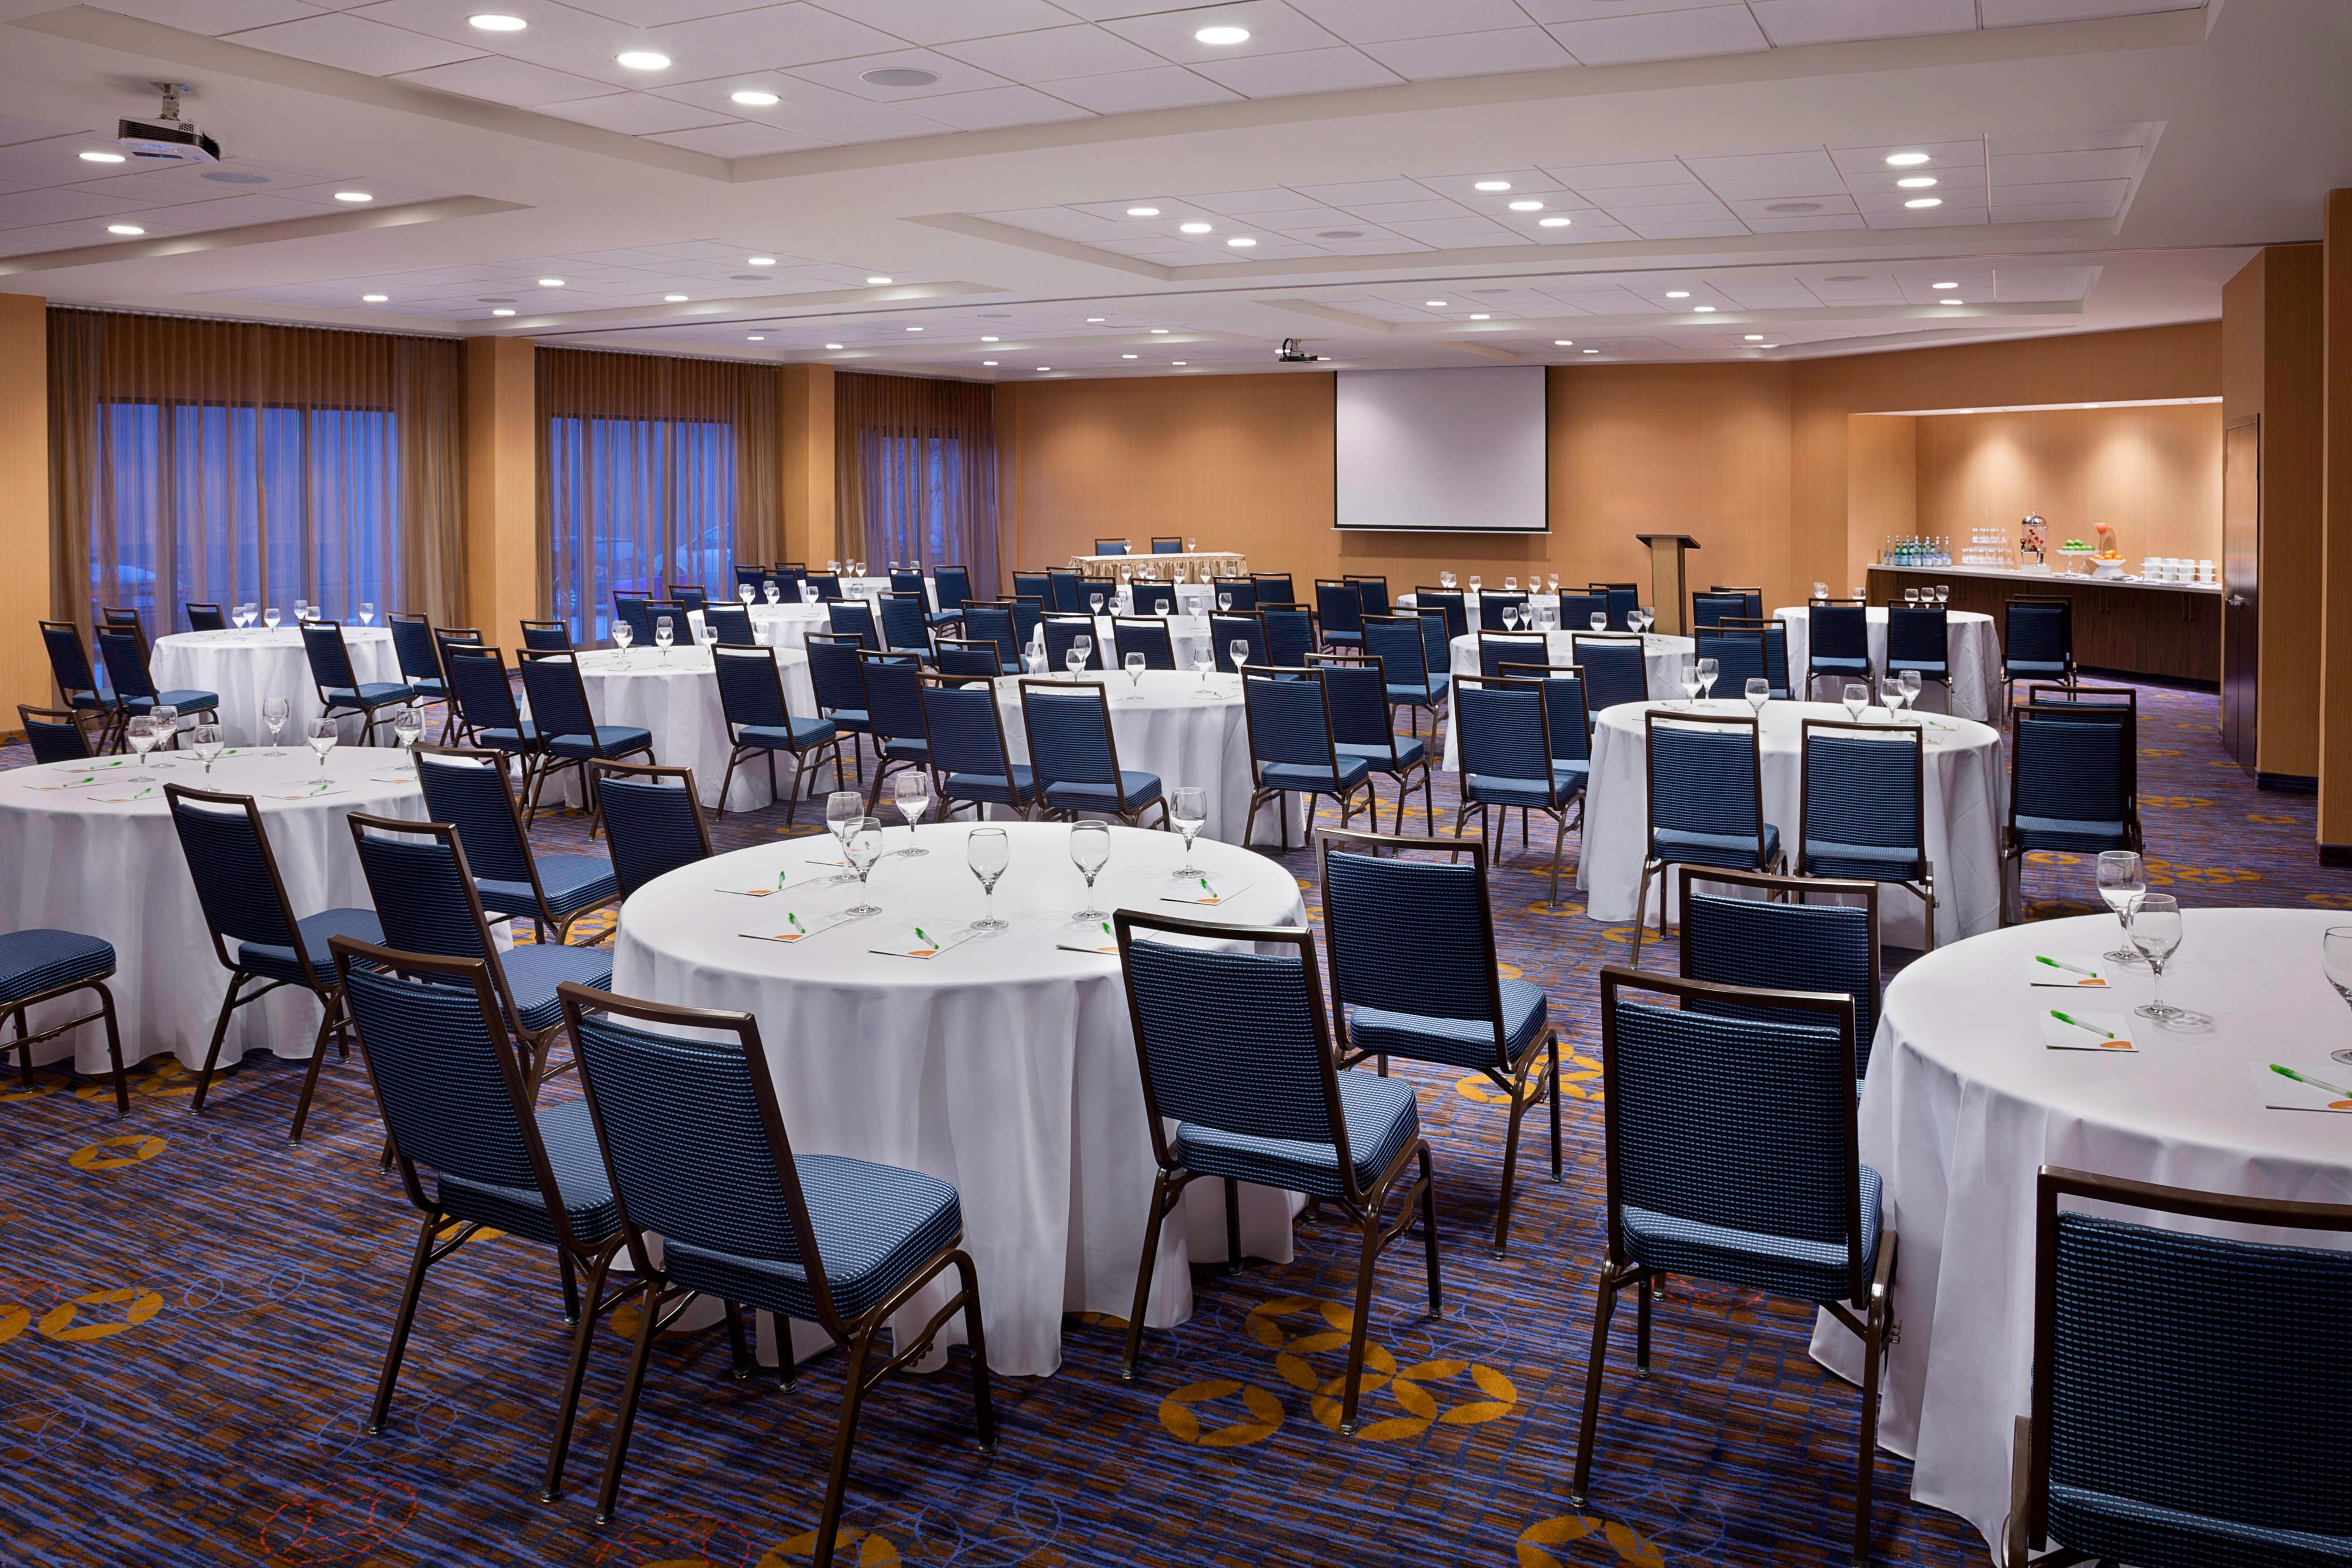 Markham Ontario meeting venue